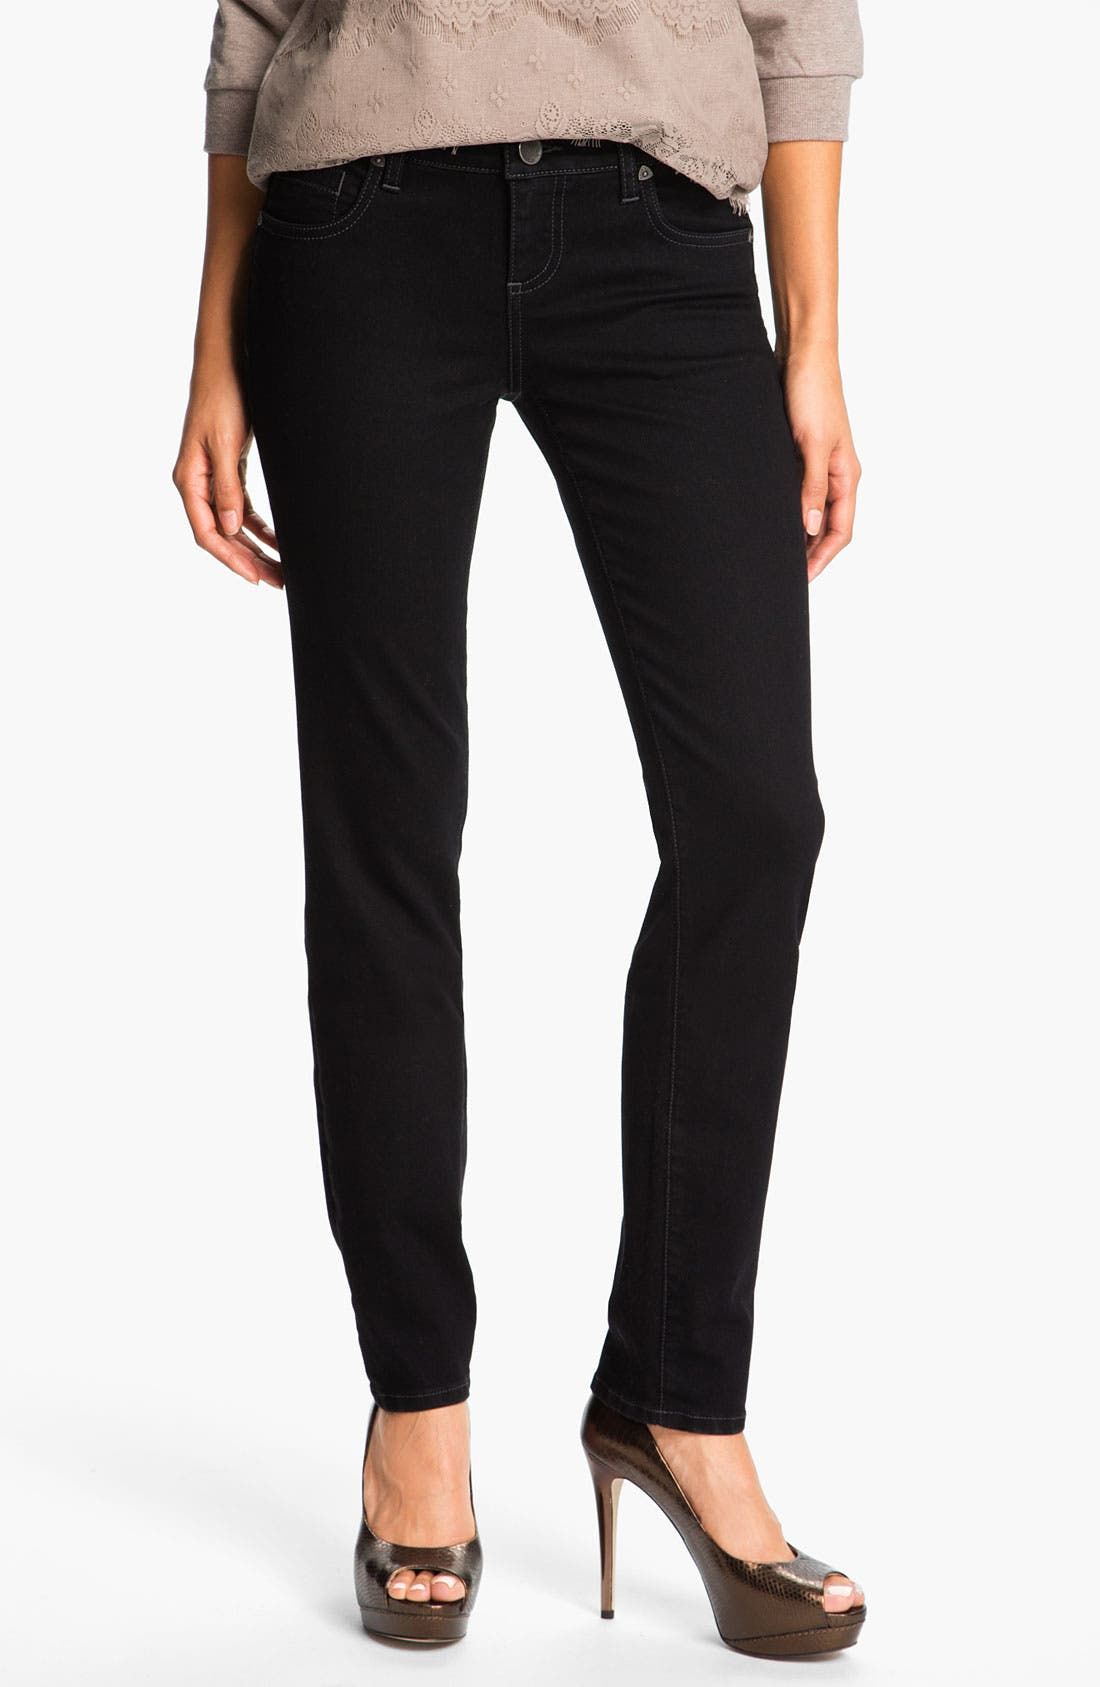 Alternate Image 1 Selected - KUT from the Kloth 'Diana' Skinny Jeans